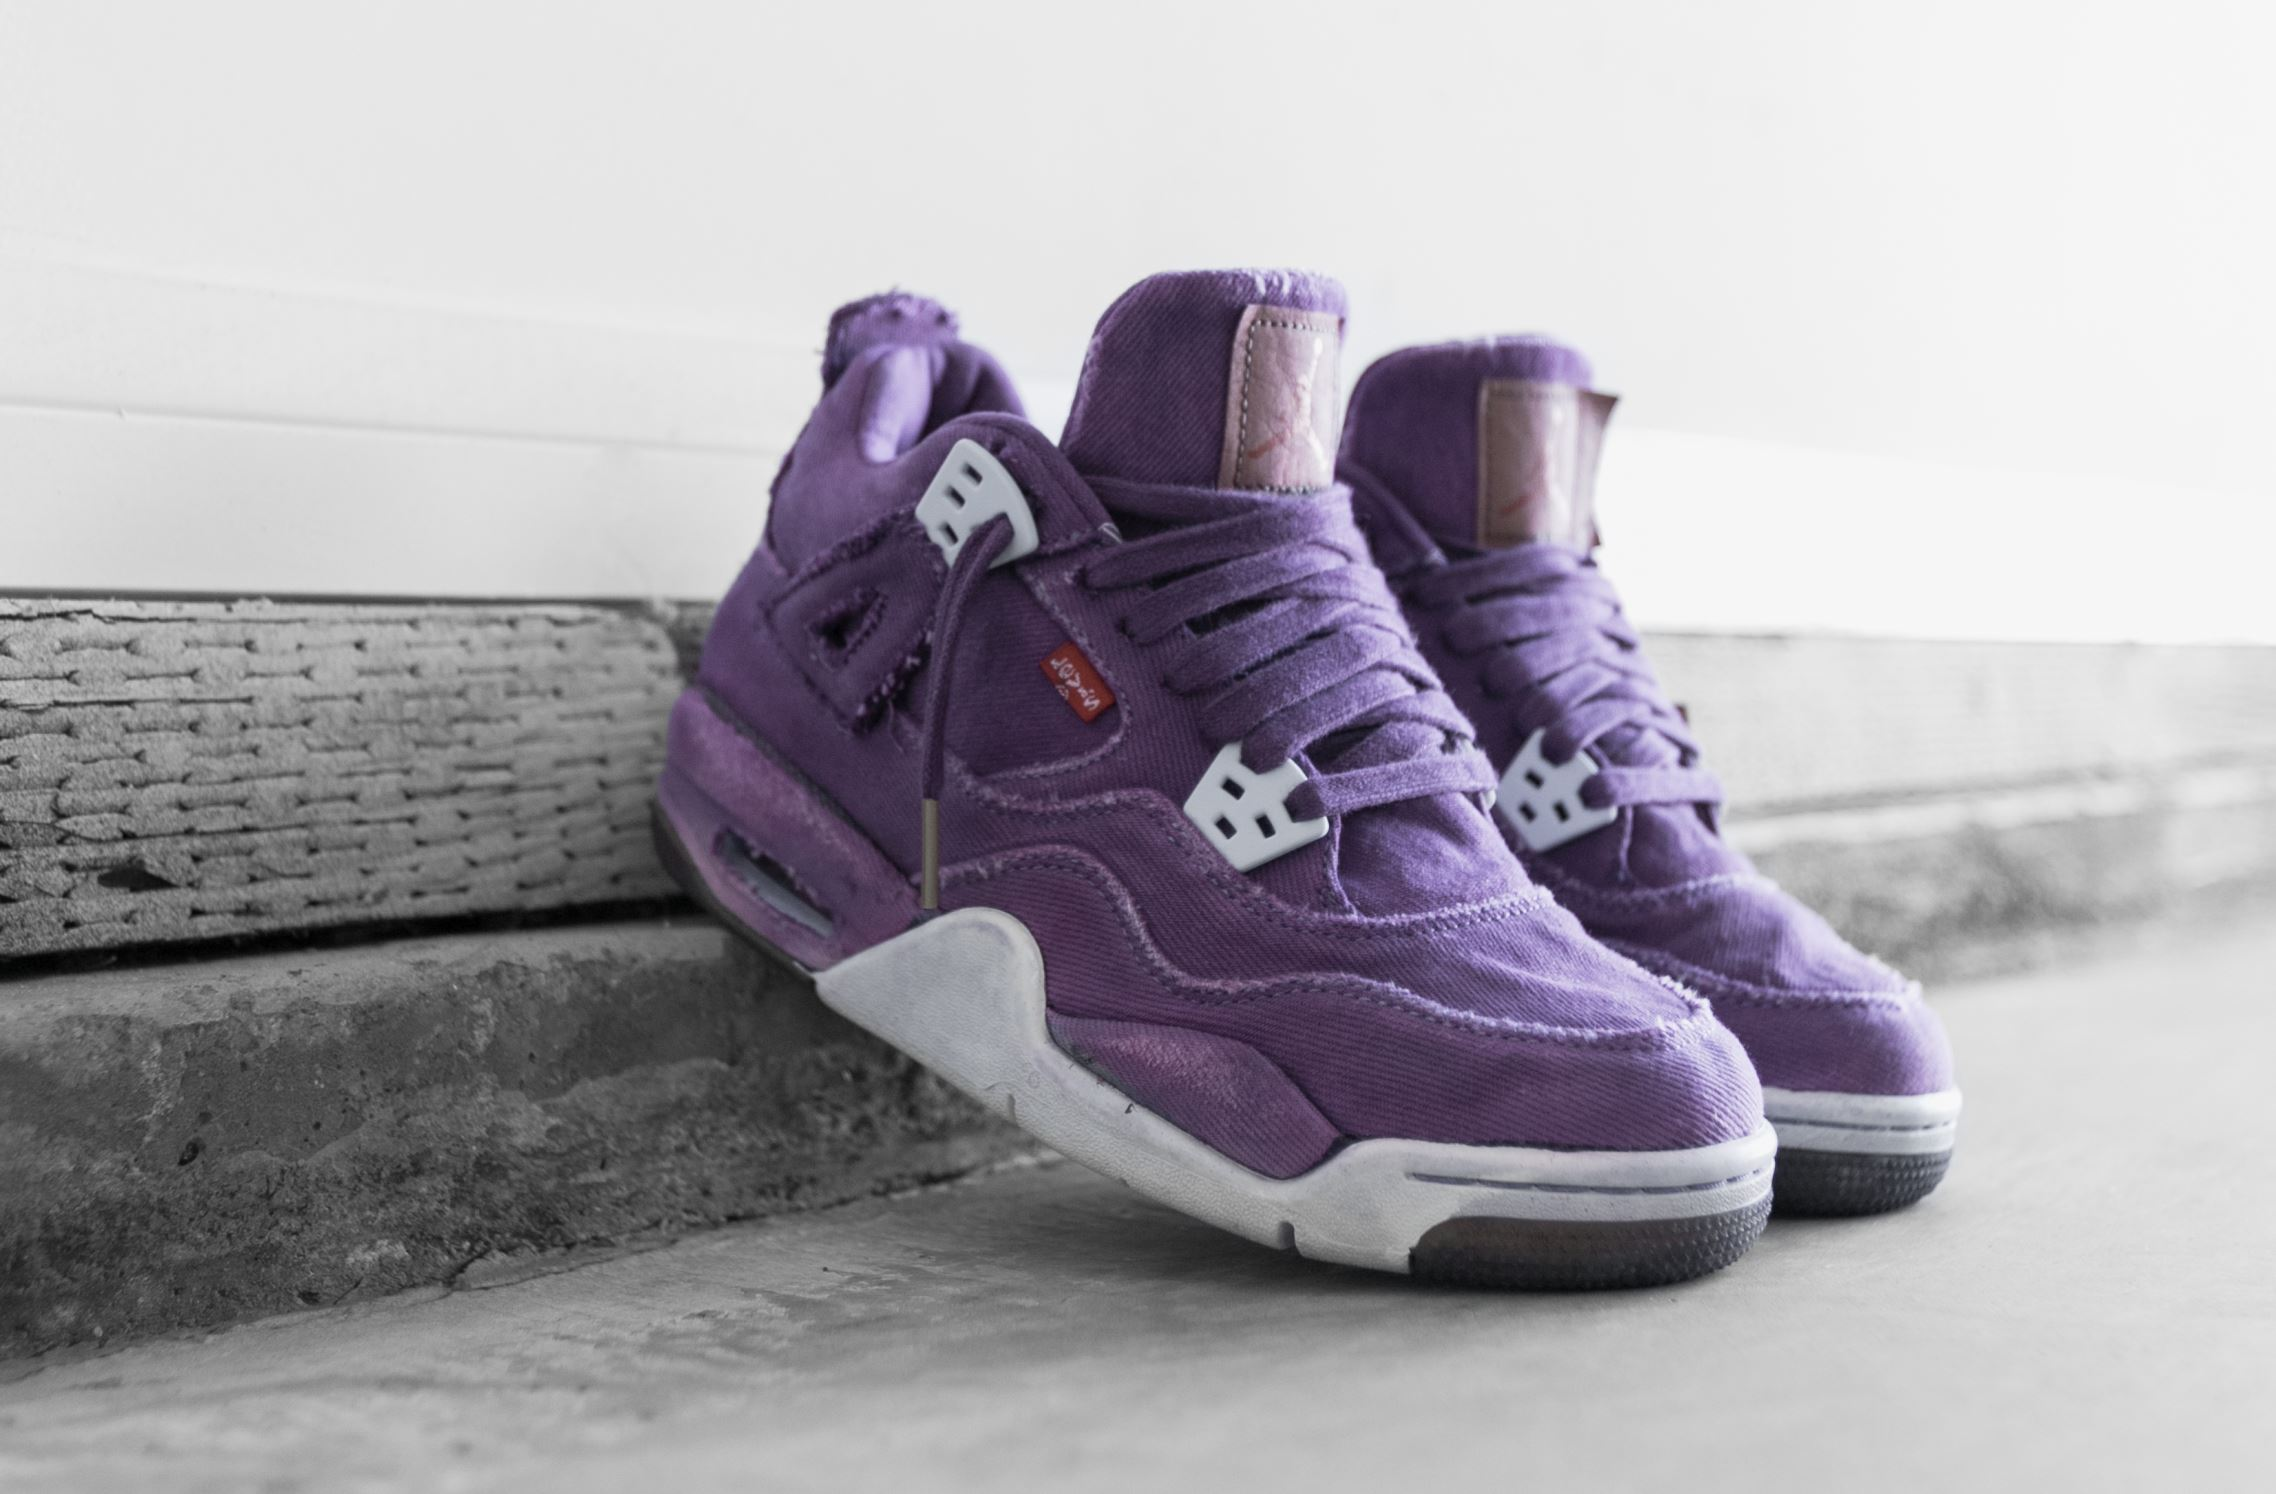 levis air jordan 4 purple custom jennizerr 1